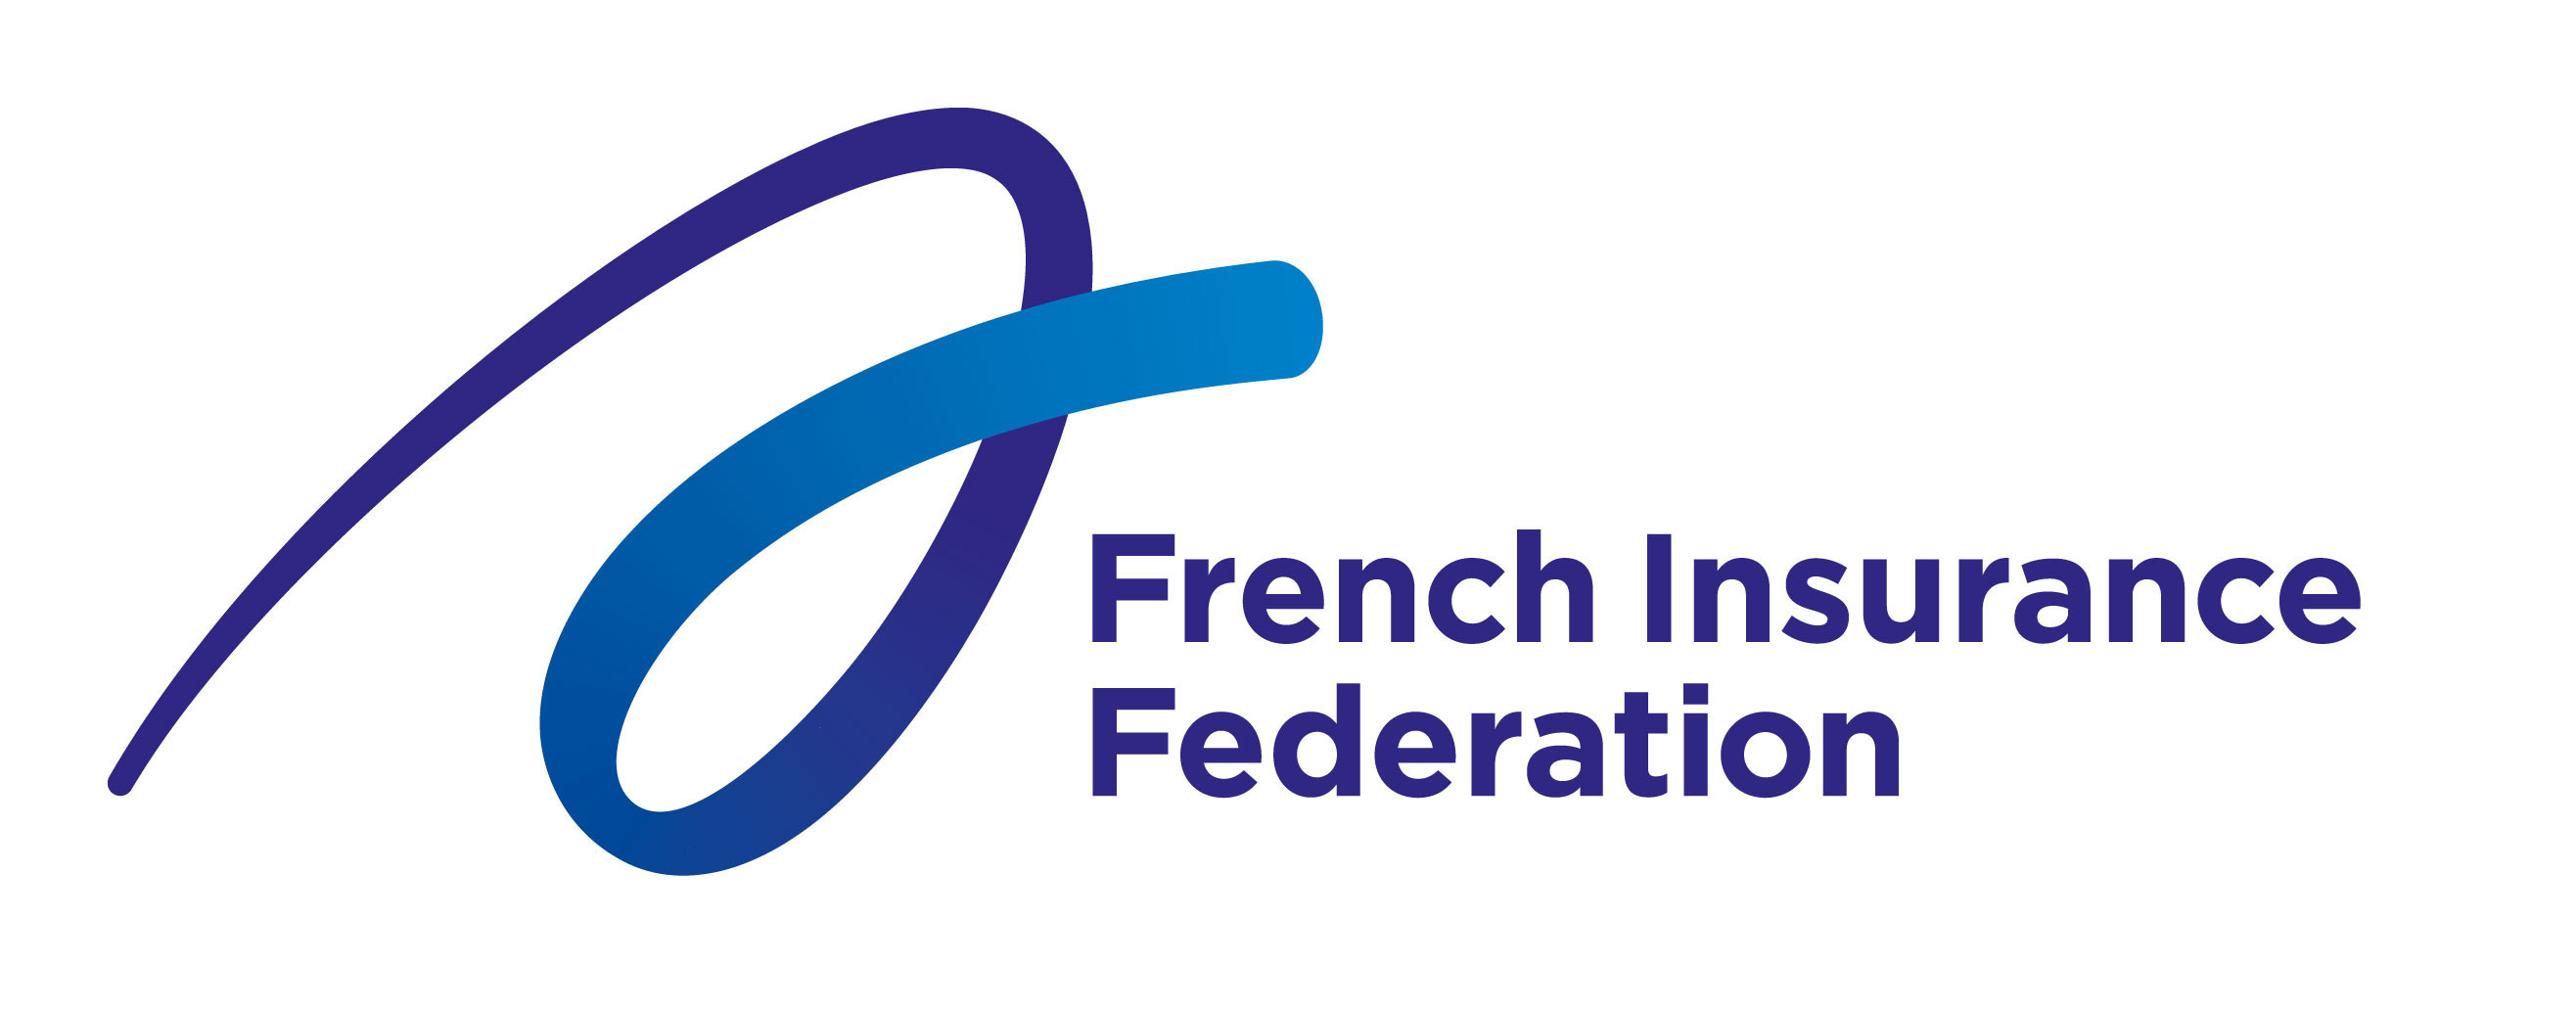 FRENCH INSURANCE FEDERATION